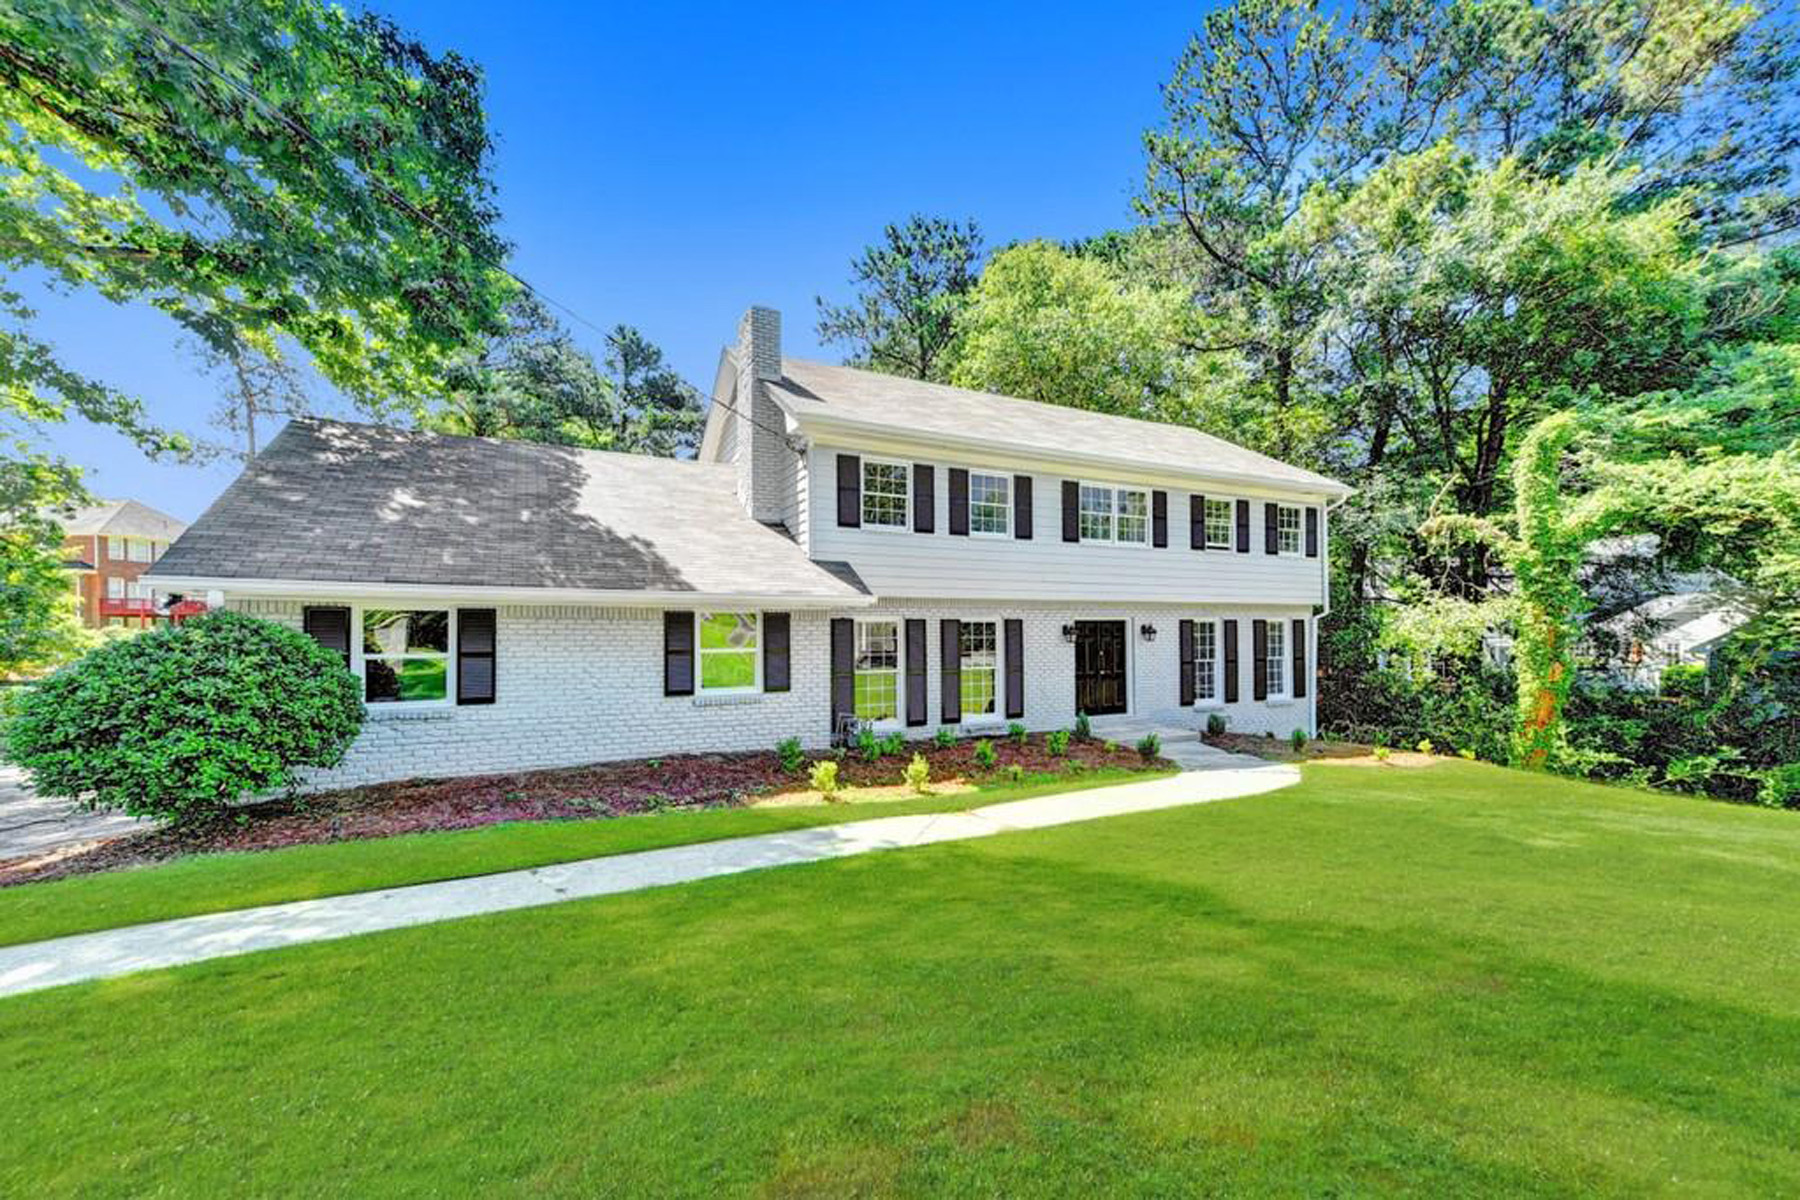 Single Family Homes for Sale at Renovated Home In Sought After Location 1757 North Springs Drive Dunwoody, Georgia 30038 United States